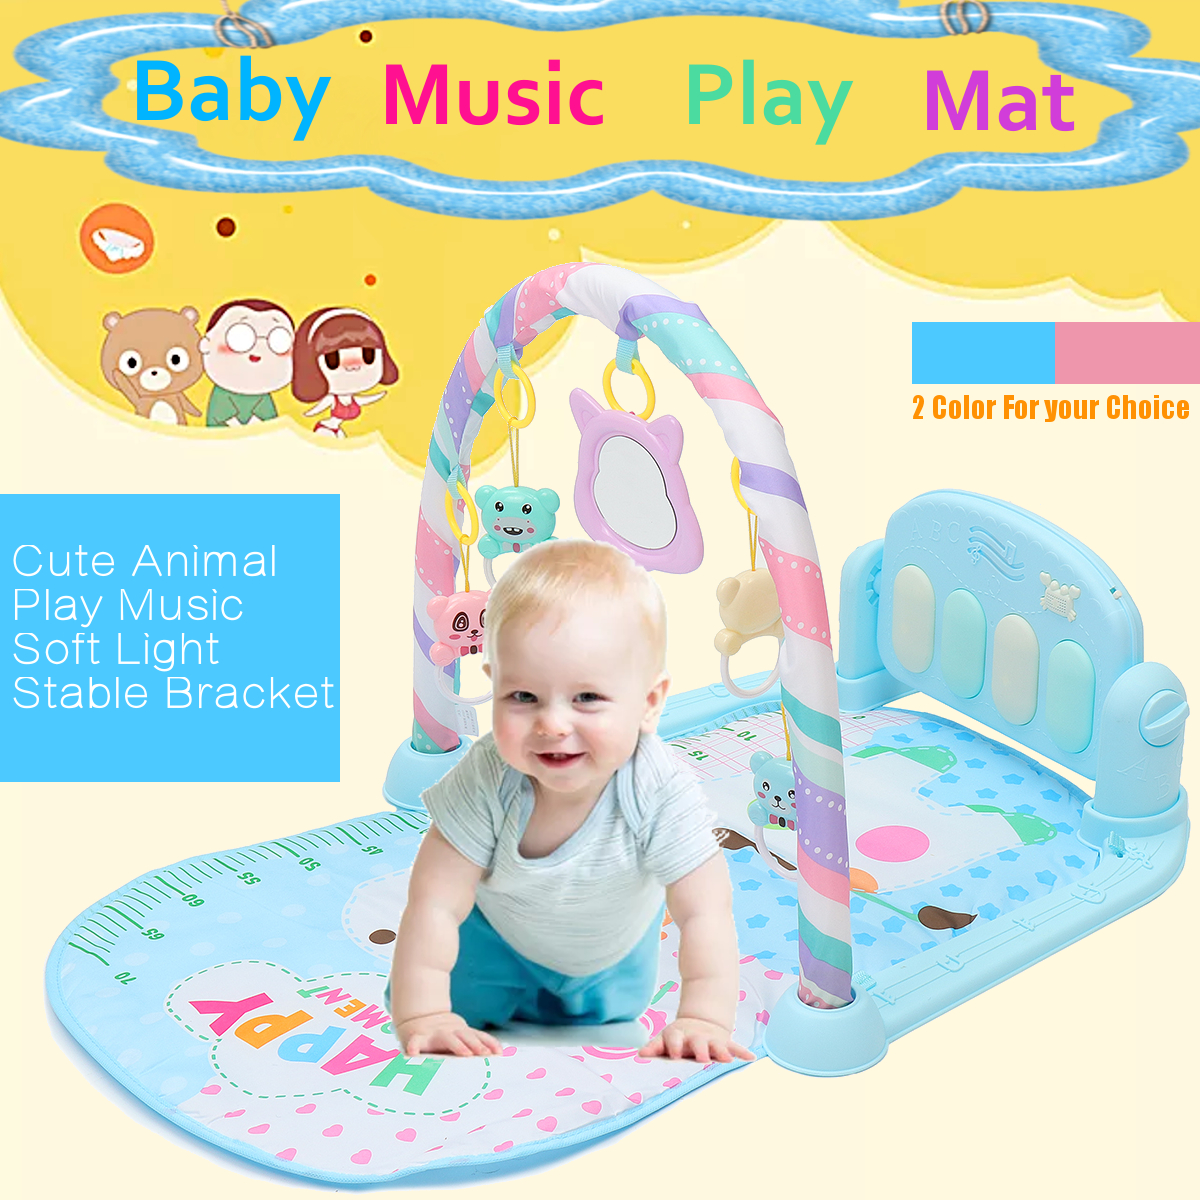 3 IN 1 Infant Baby Kids Fitness Play Musical Piano Toy Gym Exercise Mat Playmat Crawling Tummy Time Soft Toddler Toy